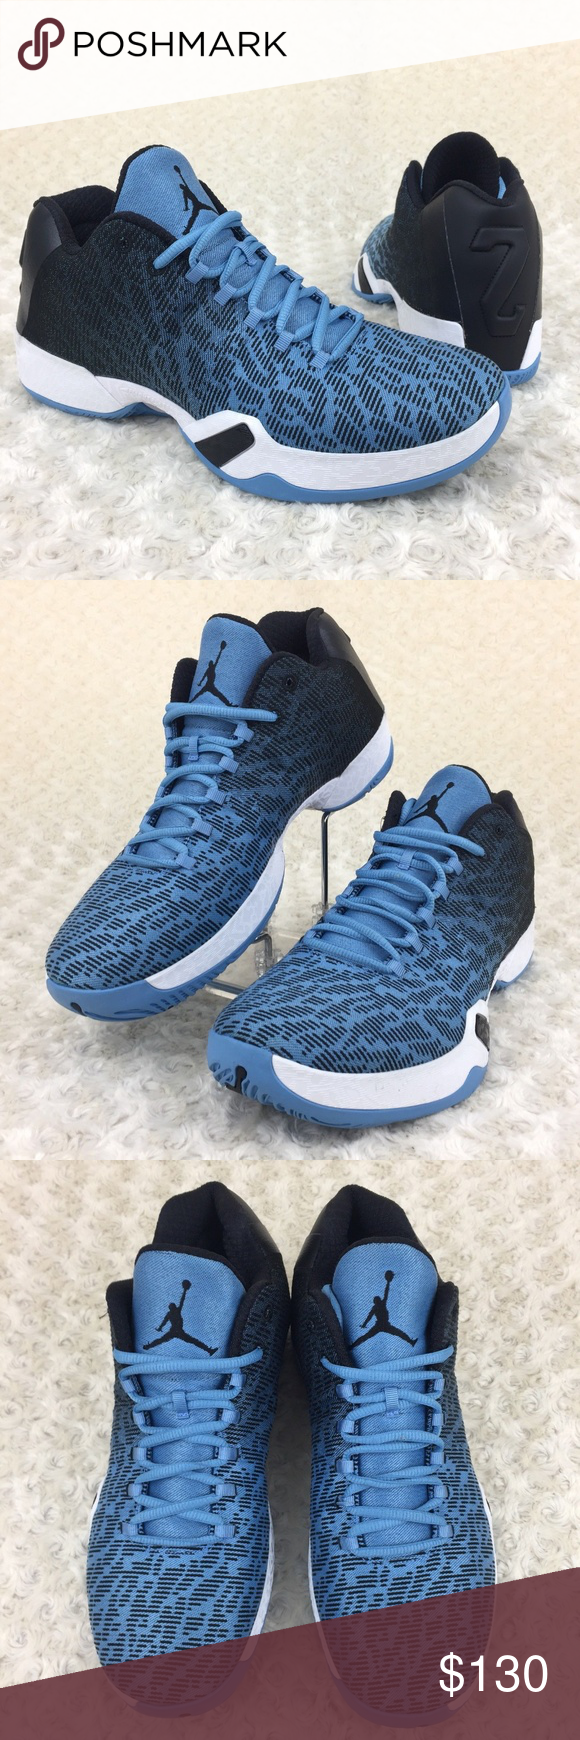 on sale 385e2 4624c Nike Air Jordan XX9 Low Basketball Shoes Nike Air Jordan XX9 29 Low UNC Men  Size 10.5 Basketball Shoes Style  828051-401 Color  University Blue  Black   ...